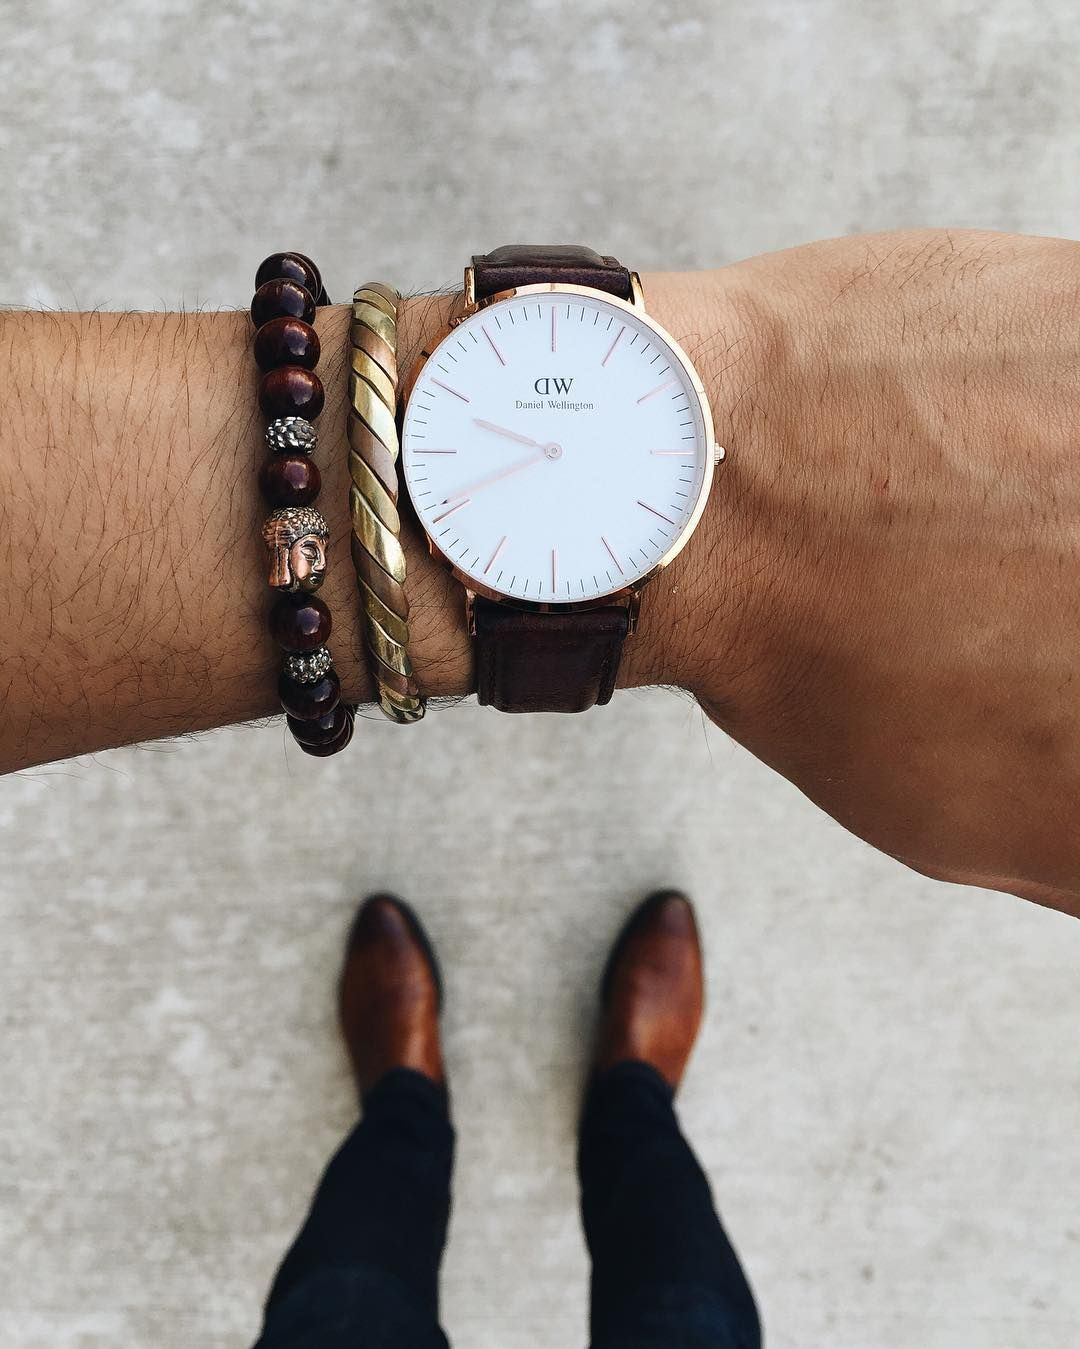 Daniel Wellington Coupons. Elegance refined in the form of a watch. Daniel Wellington watches aim to be the time piece of choice for any person pursing a preppy style. The watch is more than just a fashion accessory. Each piece is part of the inspired story of Daniel Wellington, the namesake of the company.